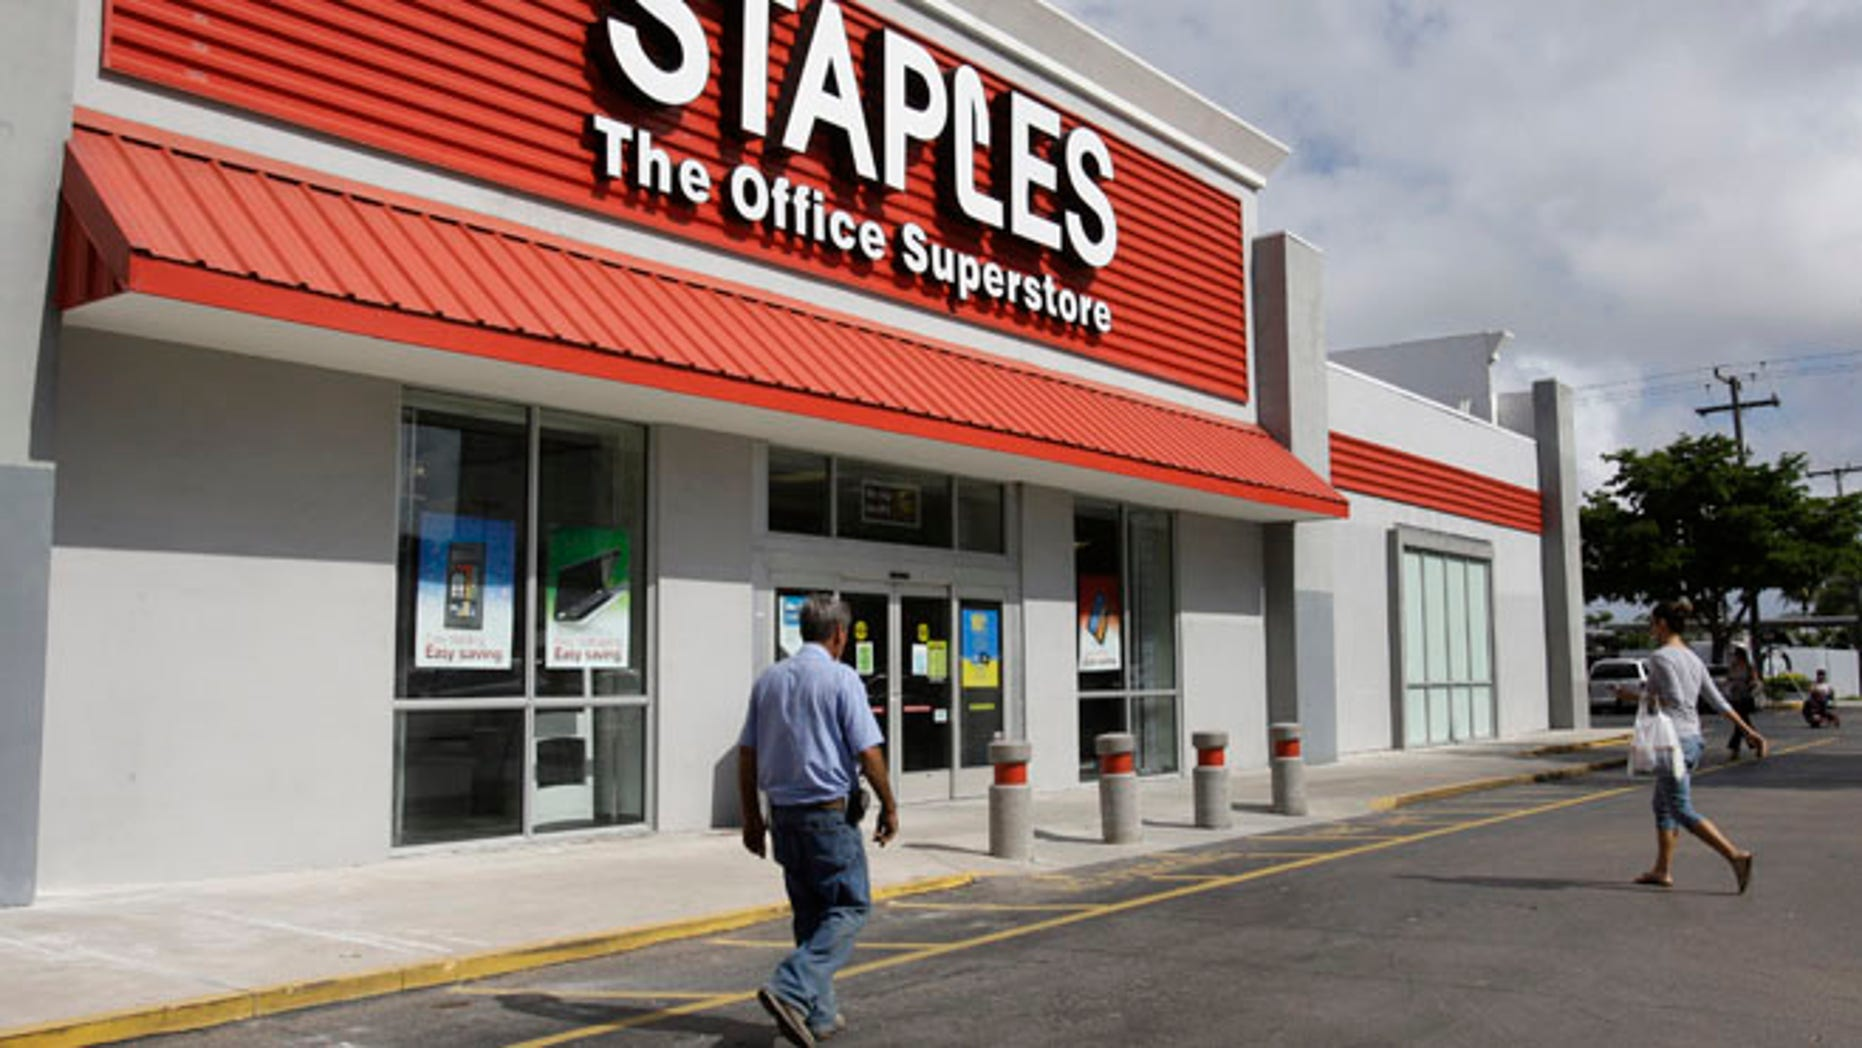 This March 6, 2013 file photo shows a Staples office supply store Miami. The opening of Postal Service retail centers in dozens of Staples stores around the country is being met with threats of protests and boycotts by the agencys unions. The new outlets are staffed by Staples employees, not postal workers, and labor officials say that move replaces good-paying union jobs with low-wage, nonunion workers.